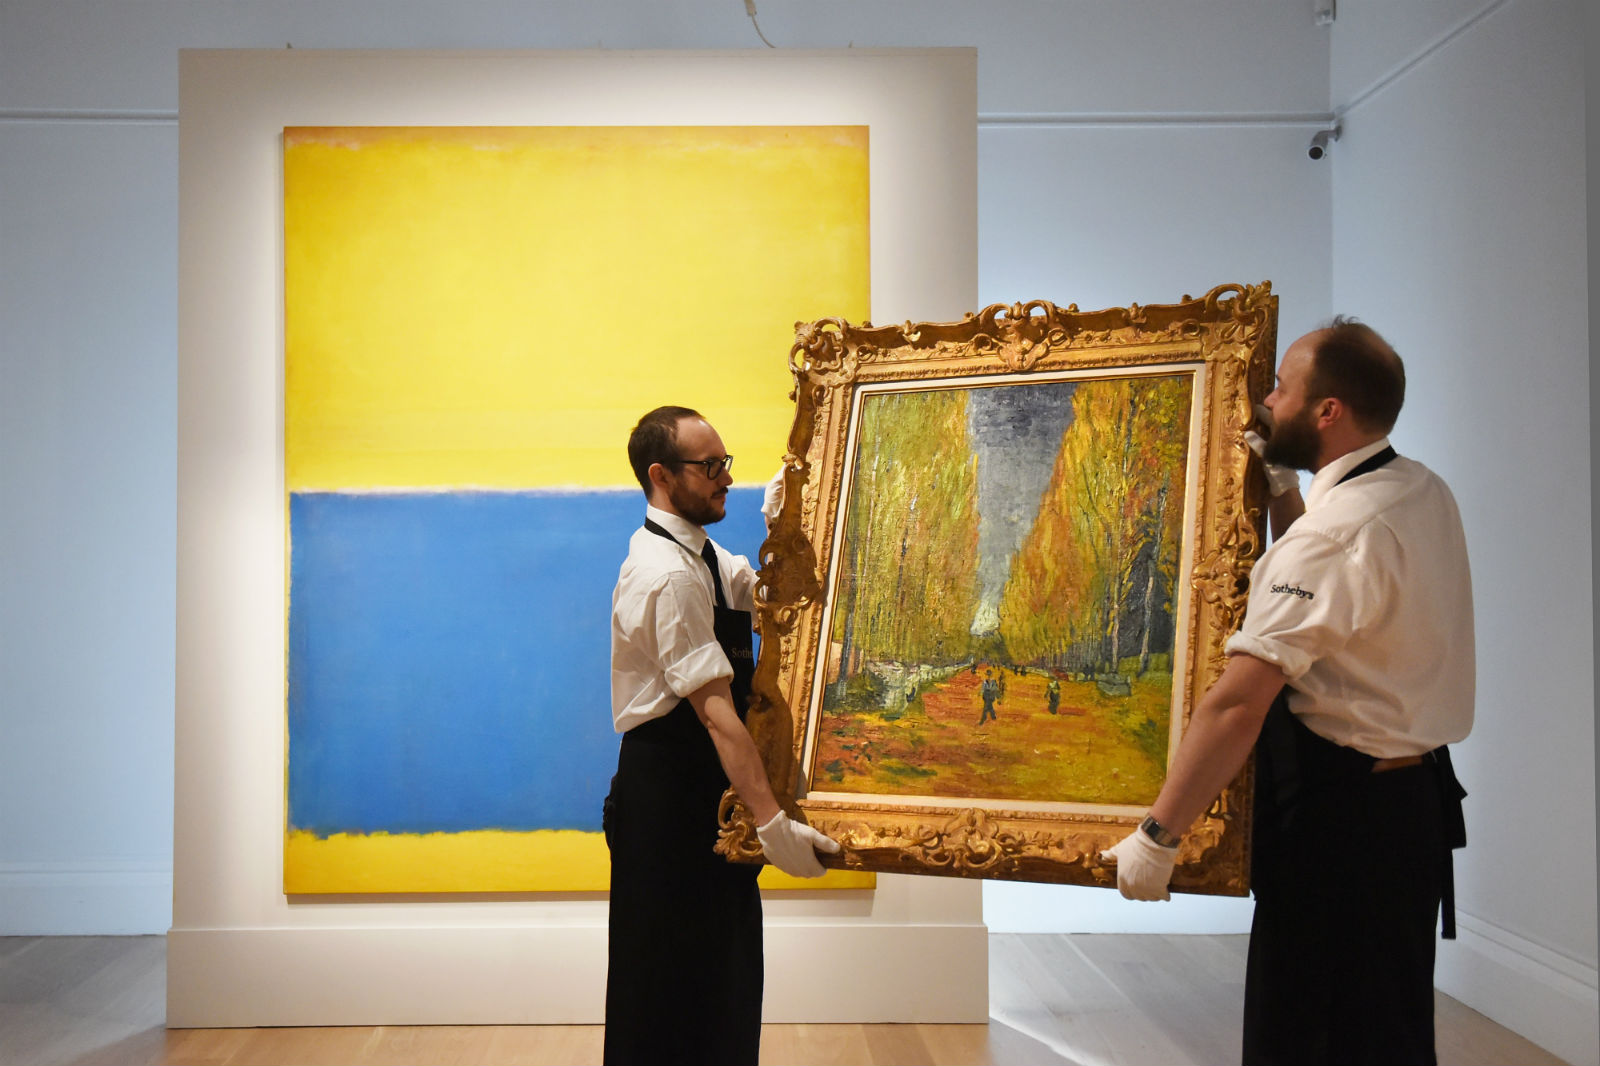 (Mary Turner/Getty Images for Sotheby's)